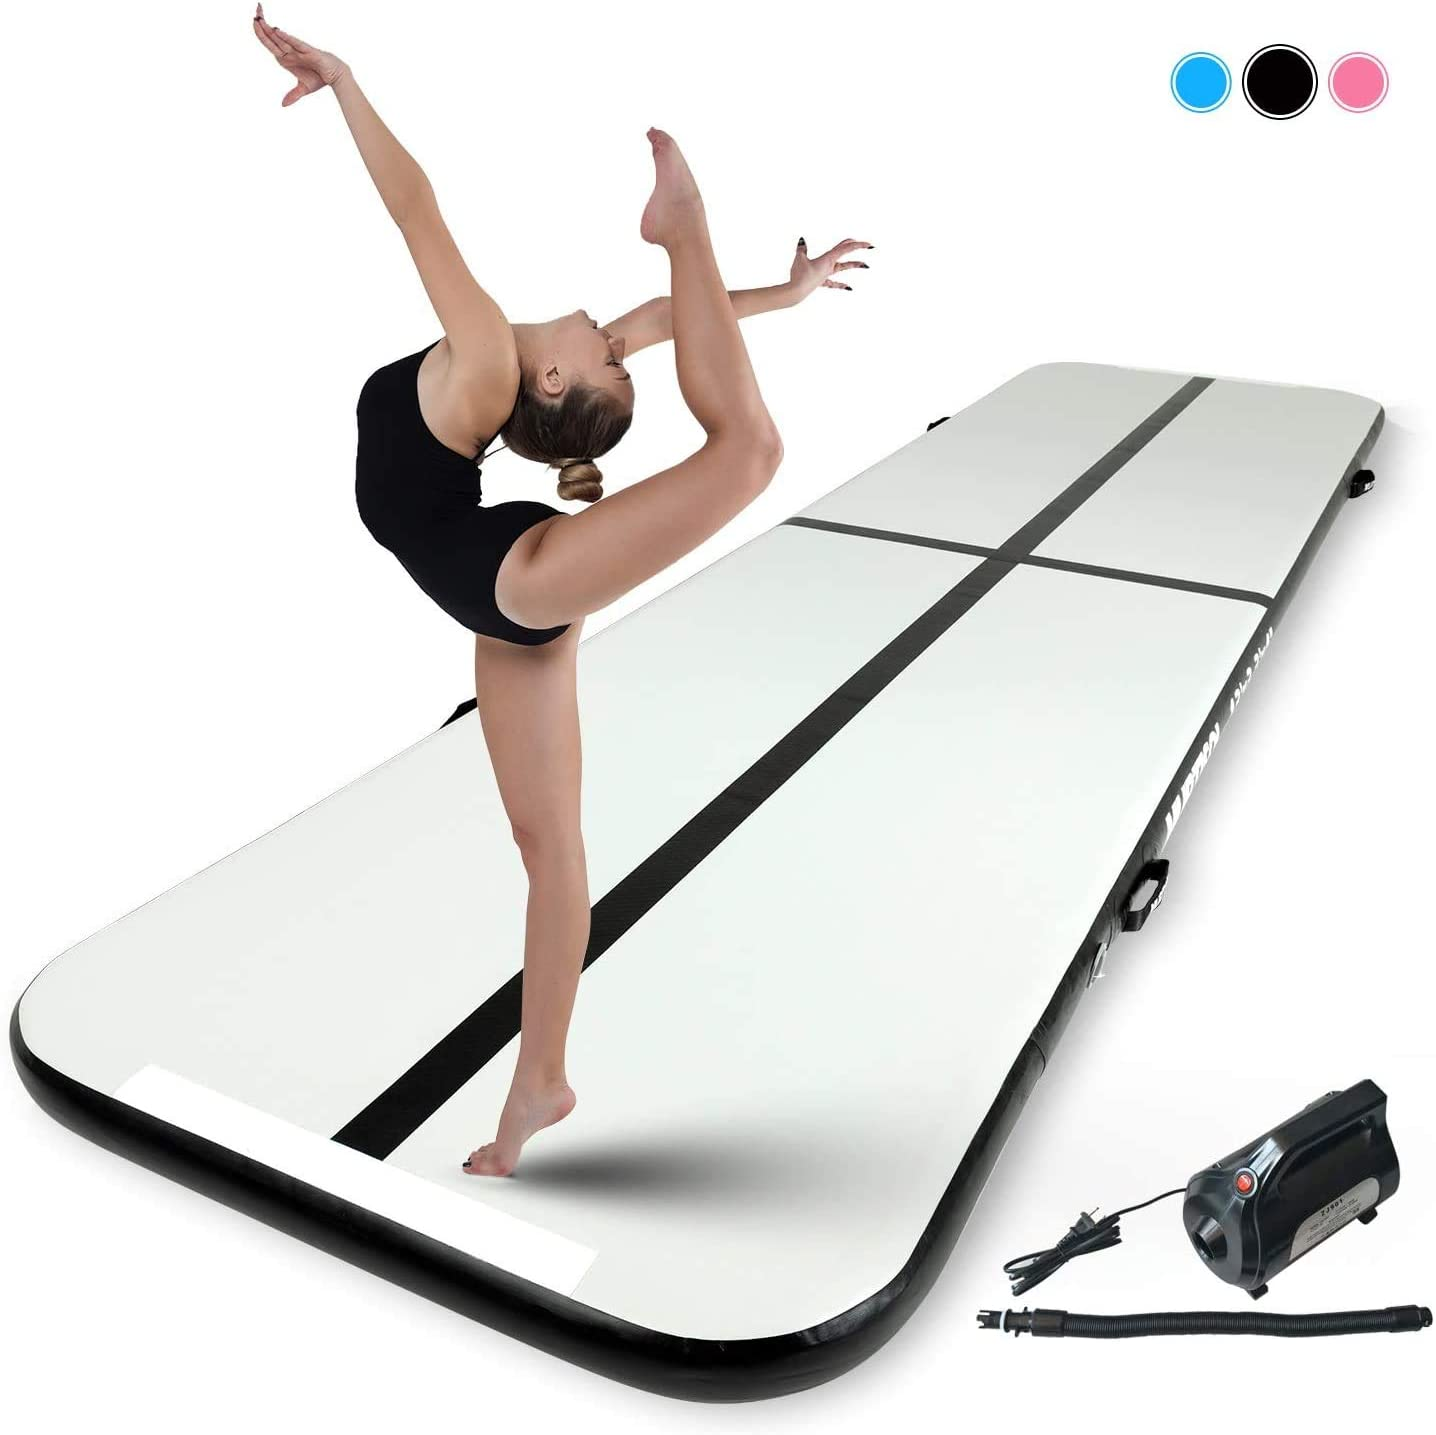 Murtisol 10//13//16//21//24//27//34ft Inflatable Gymnastics Training Mats Tumbling Mats 4//6 Inch Thickness for Home Use//Training//Cheerleading//Yoga//Water Fun with Electric Pump Pink//Blue//Black